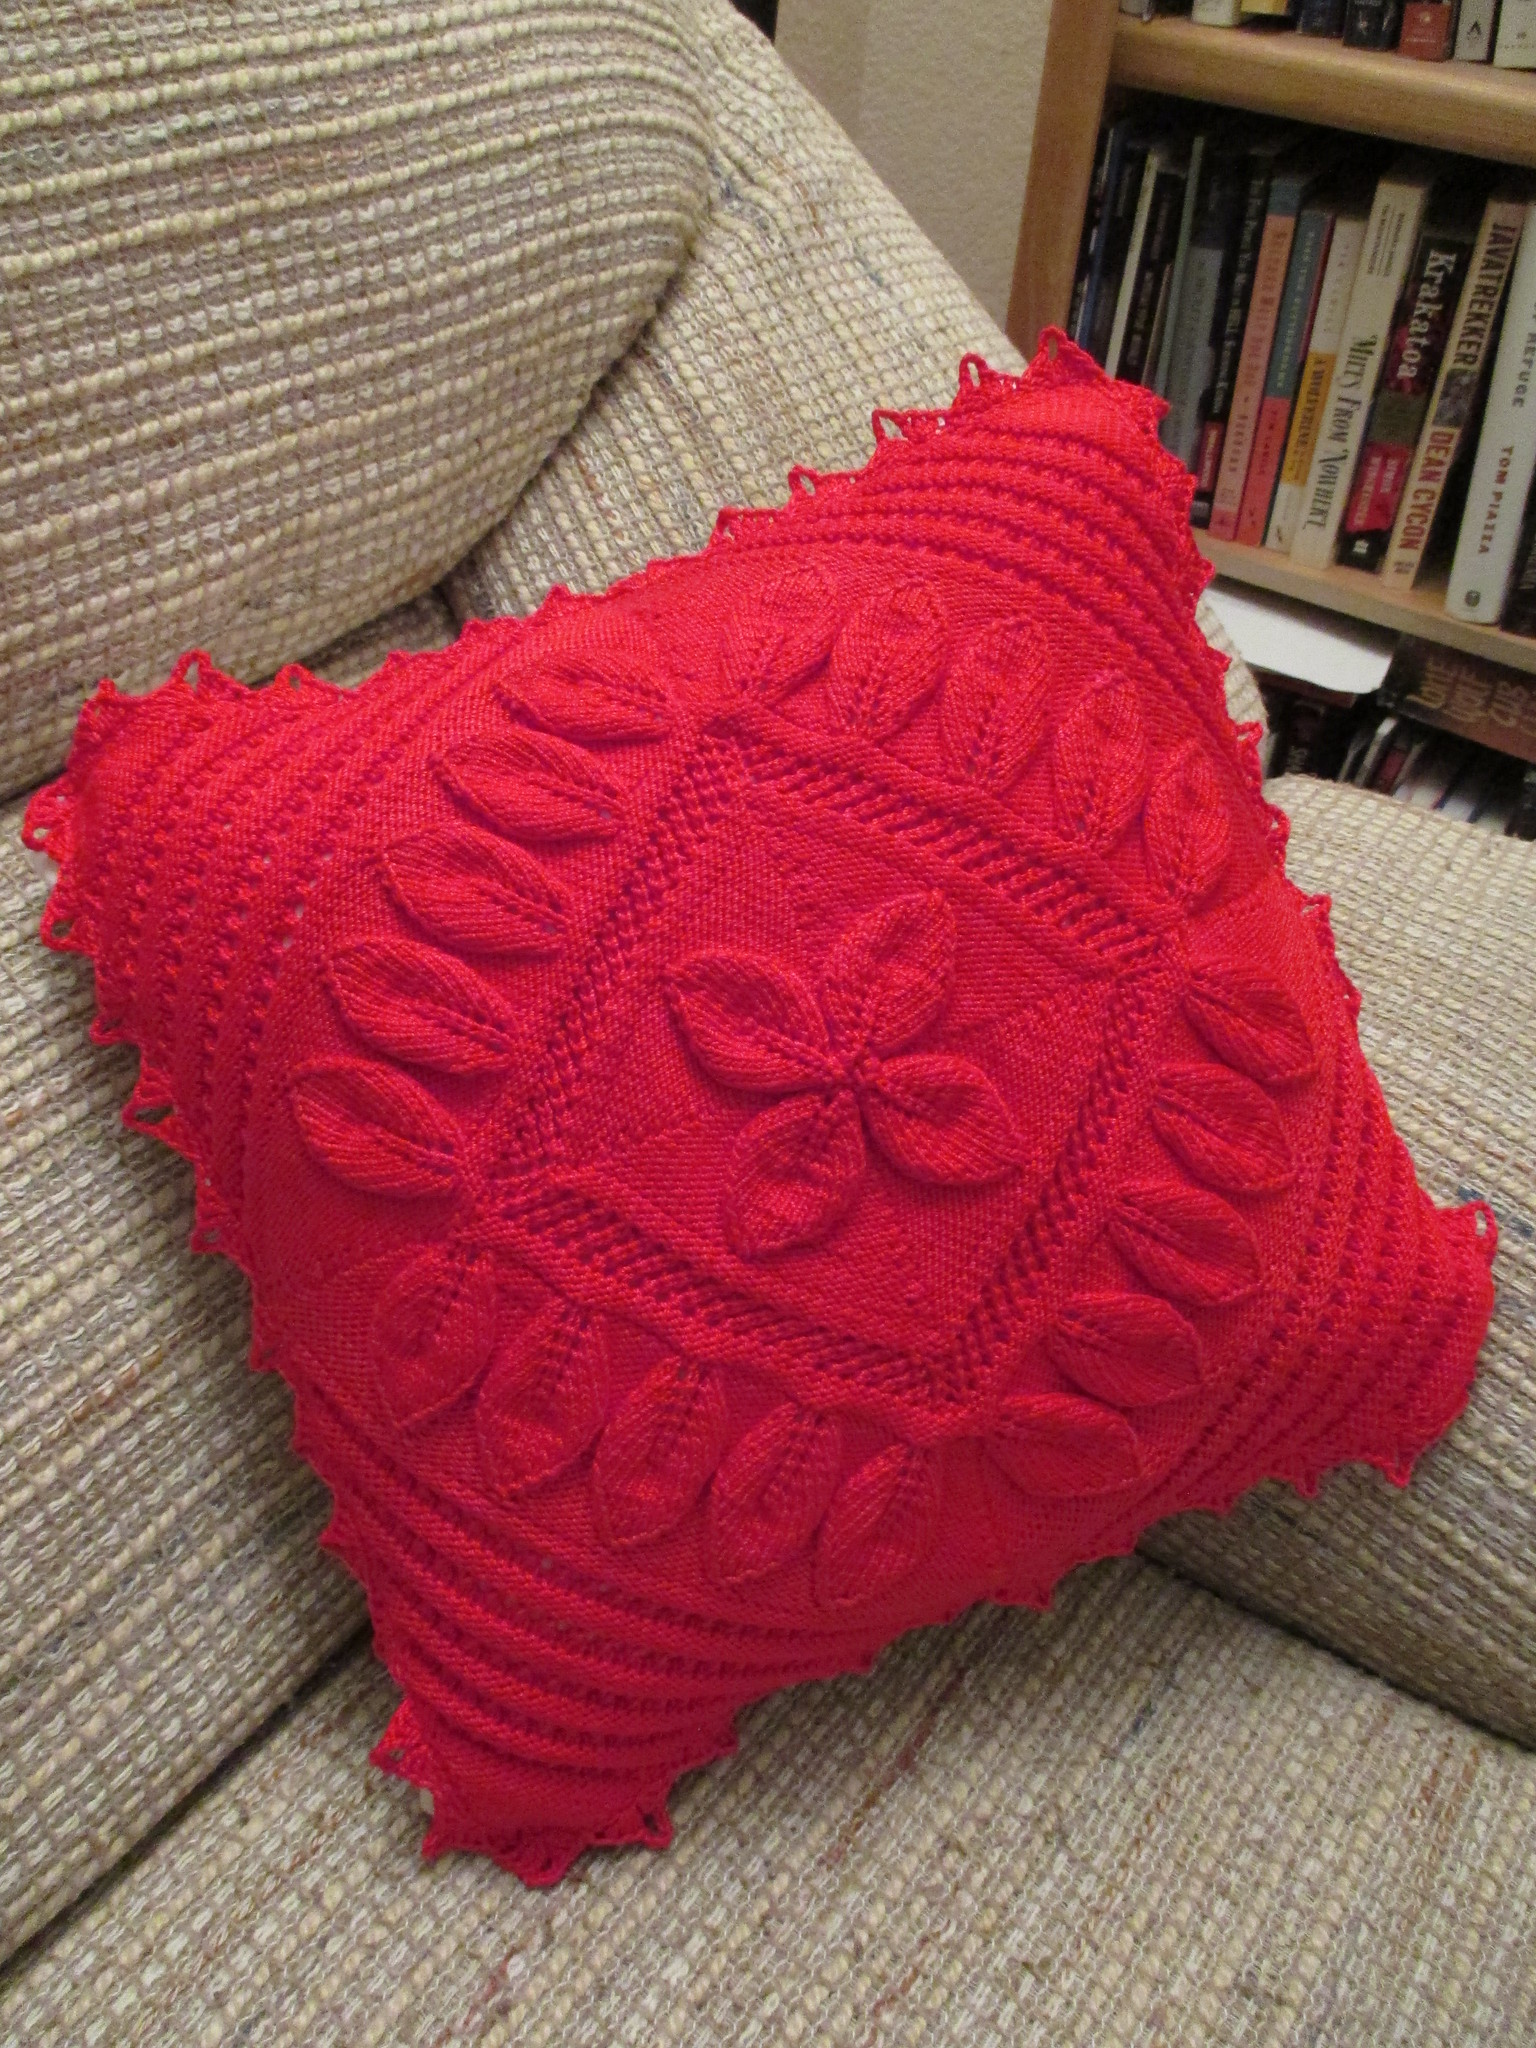 Antique Petals Counterpane Pillow